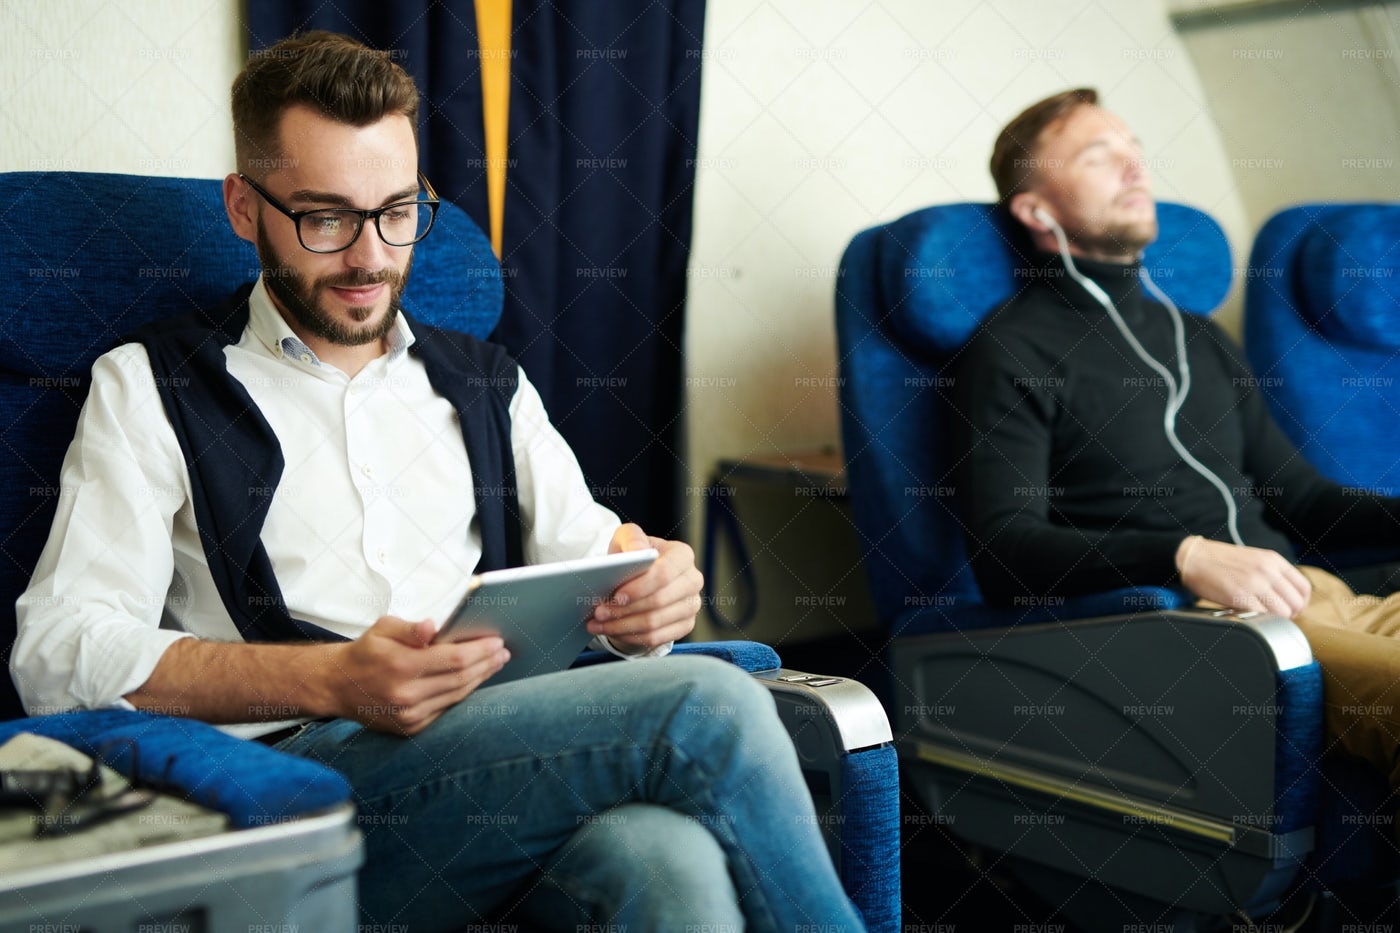 Man Using Tablet In Plane: Stock Photos